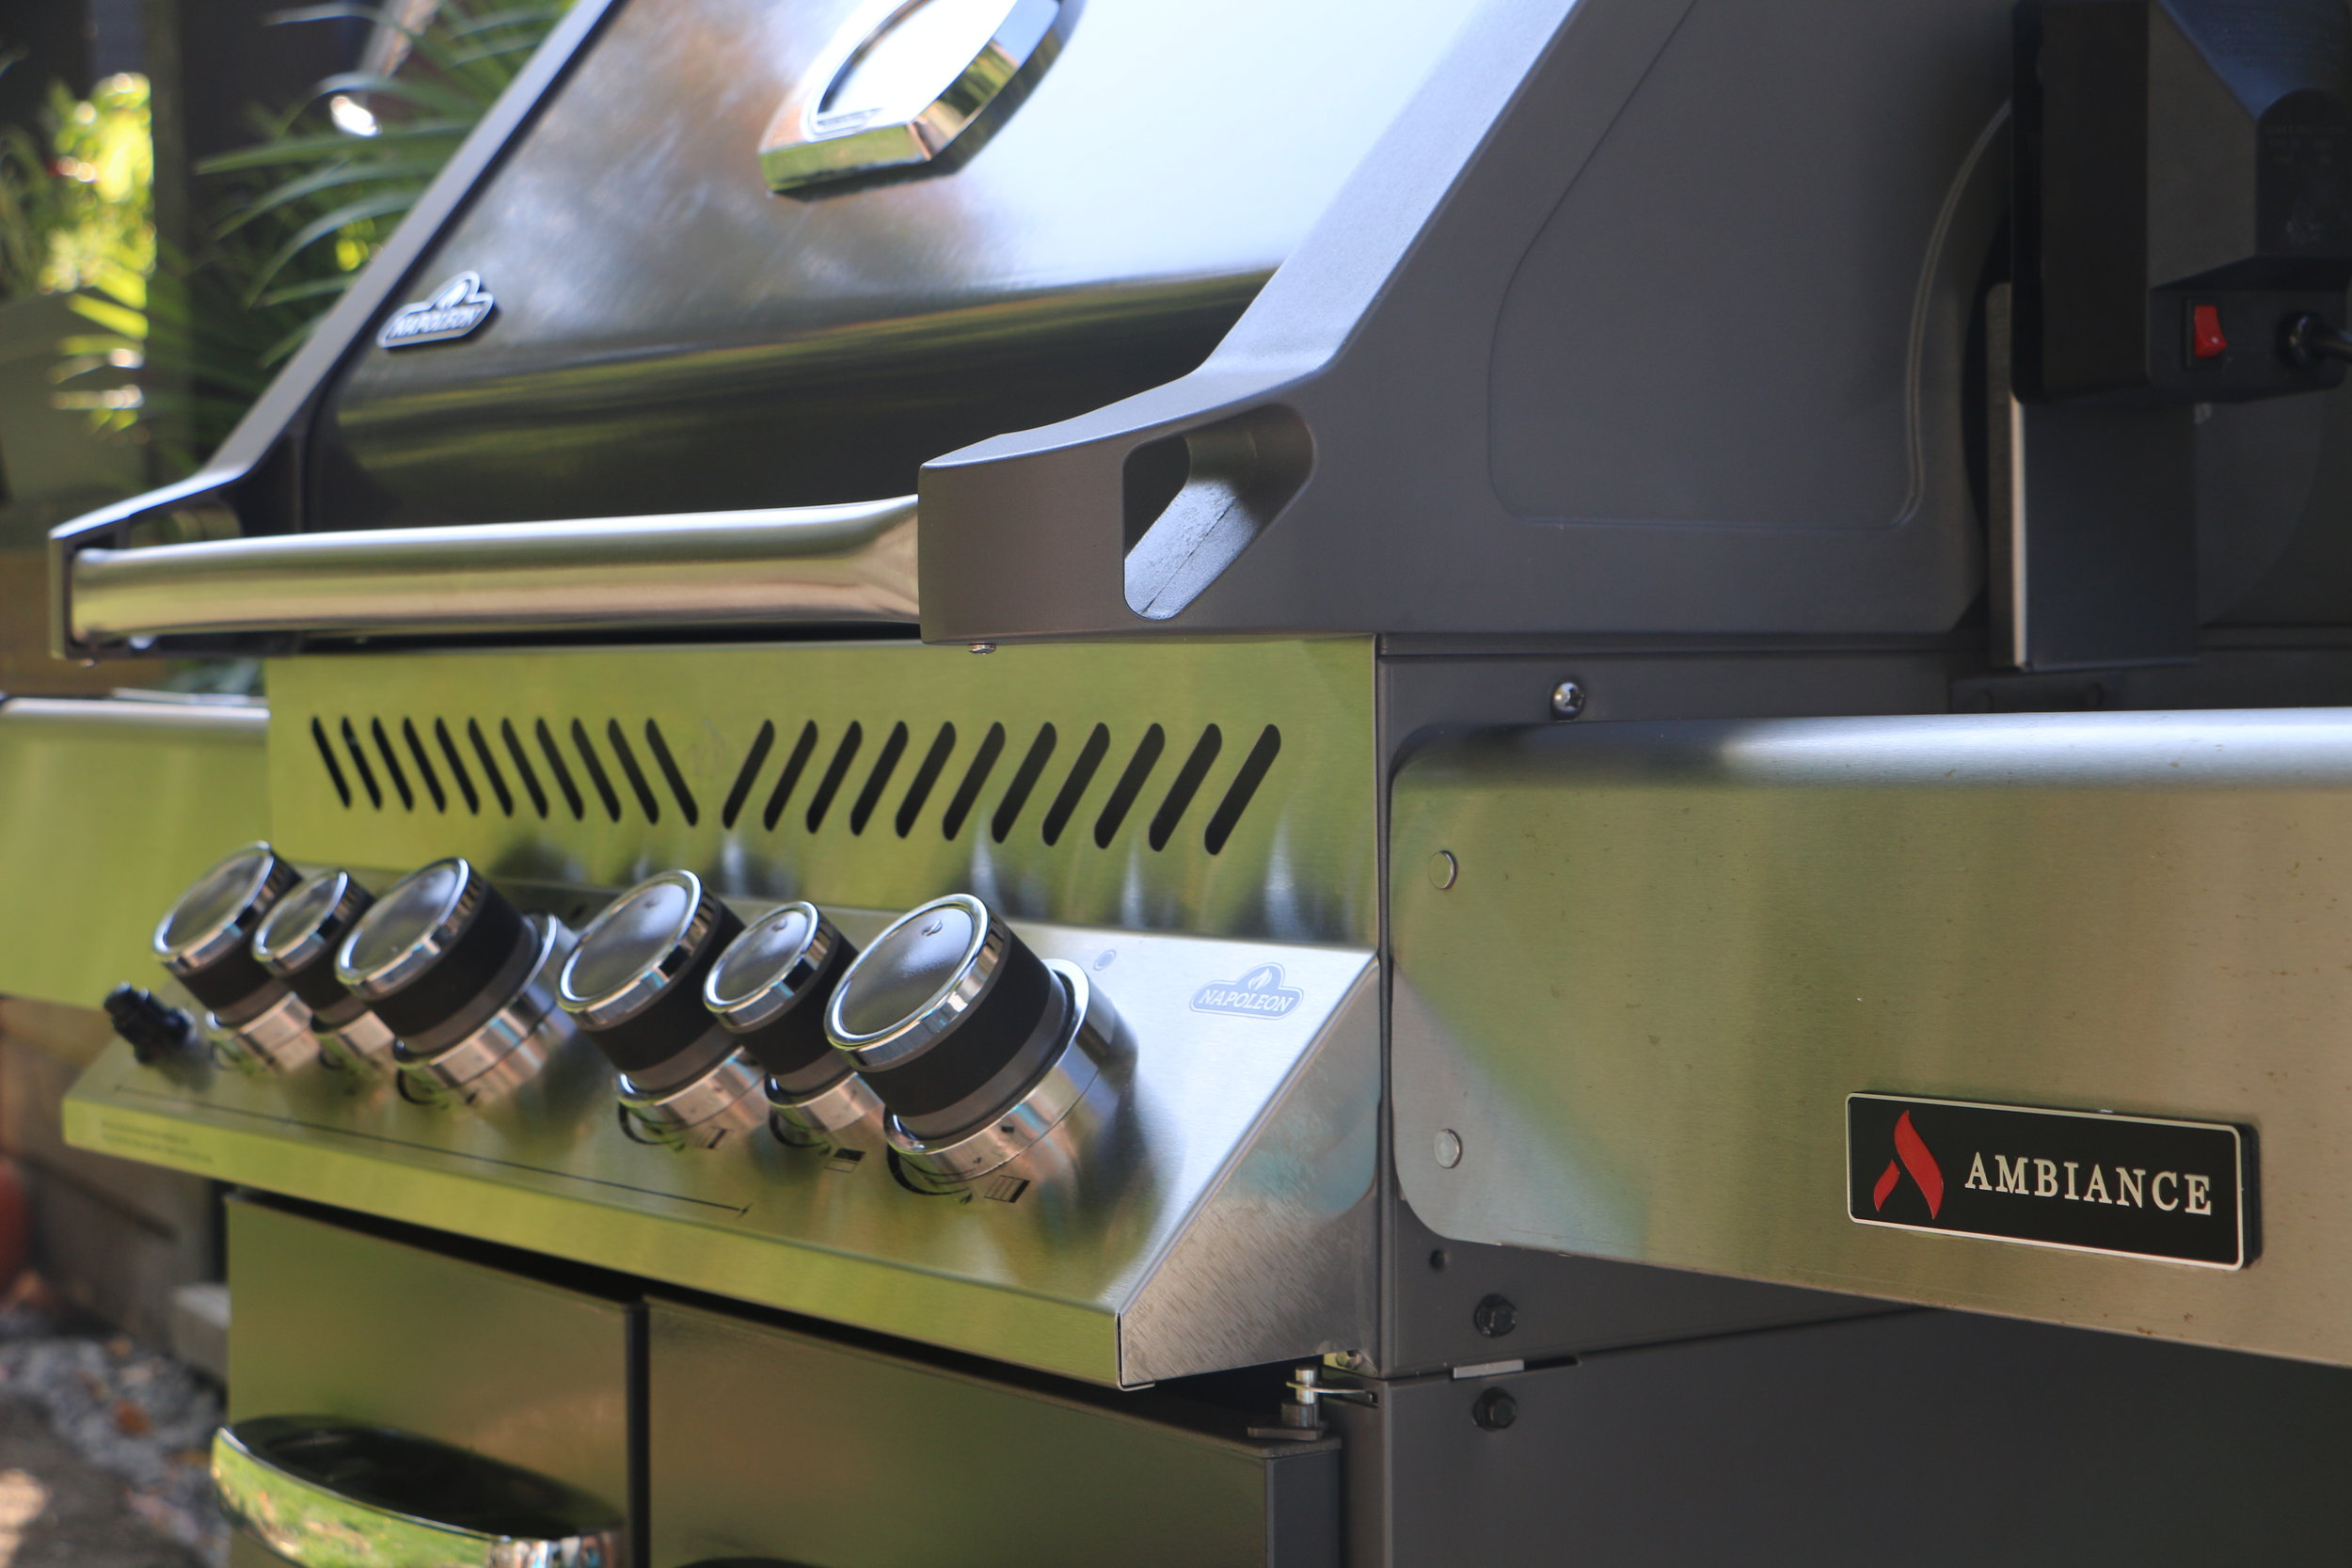 Ambiance BBQ Grills at Chim Chimney Fireplace Pool & Spa